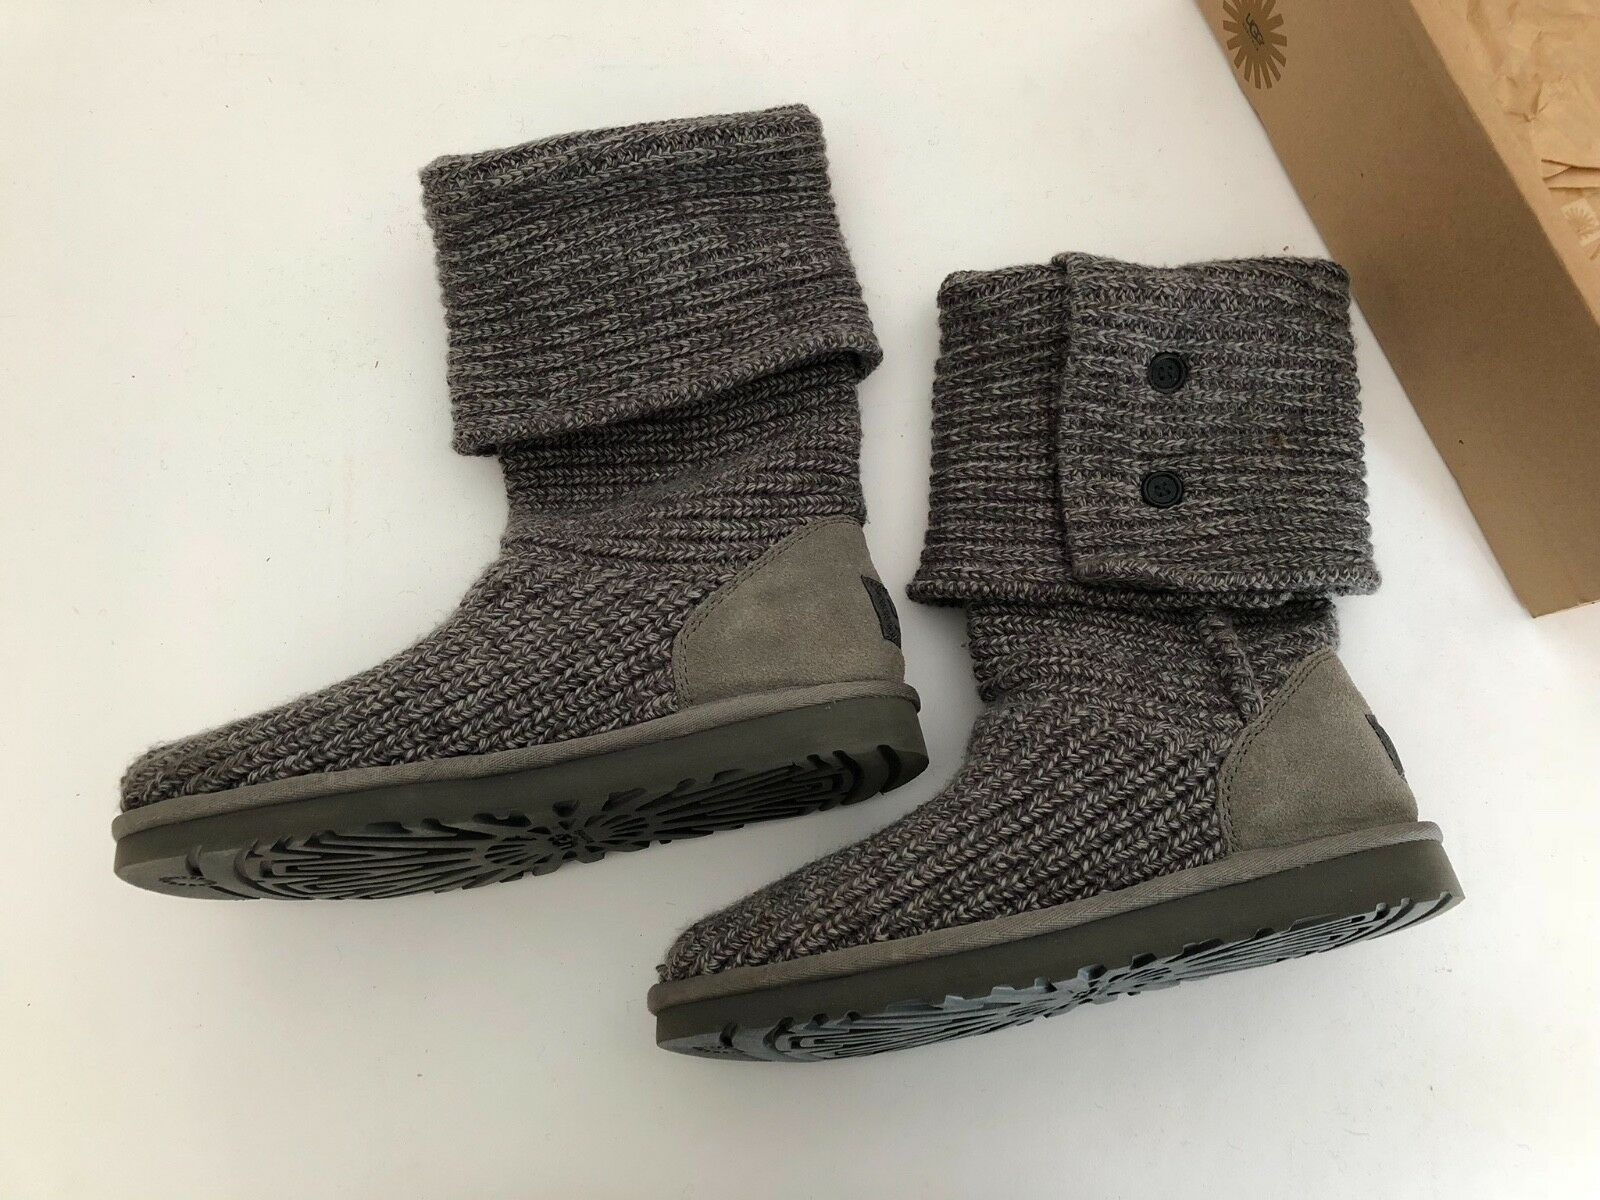 fded56eda ... UPC 889830402266 product image for Ugg Classic Cardy Crochet Tall Boots  Three Botton Grey Size 8 ...